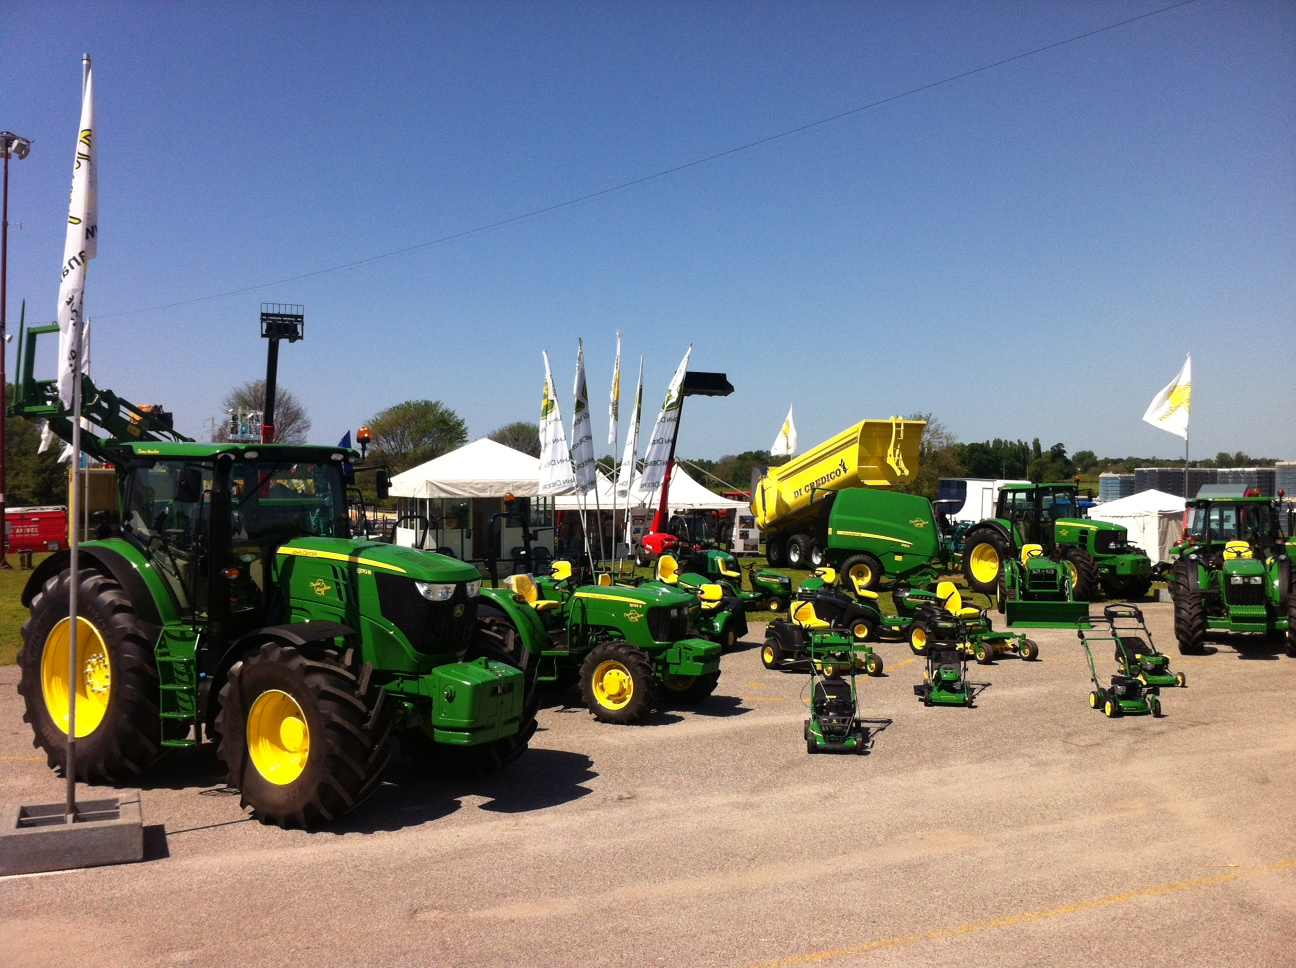 Mostra Agricola Campoverde 2012